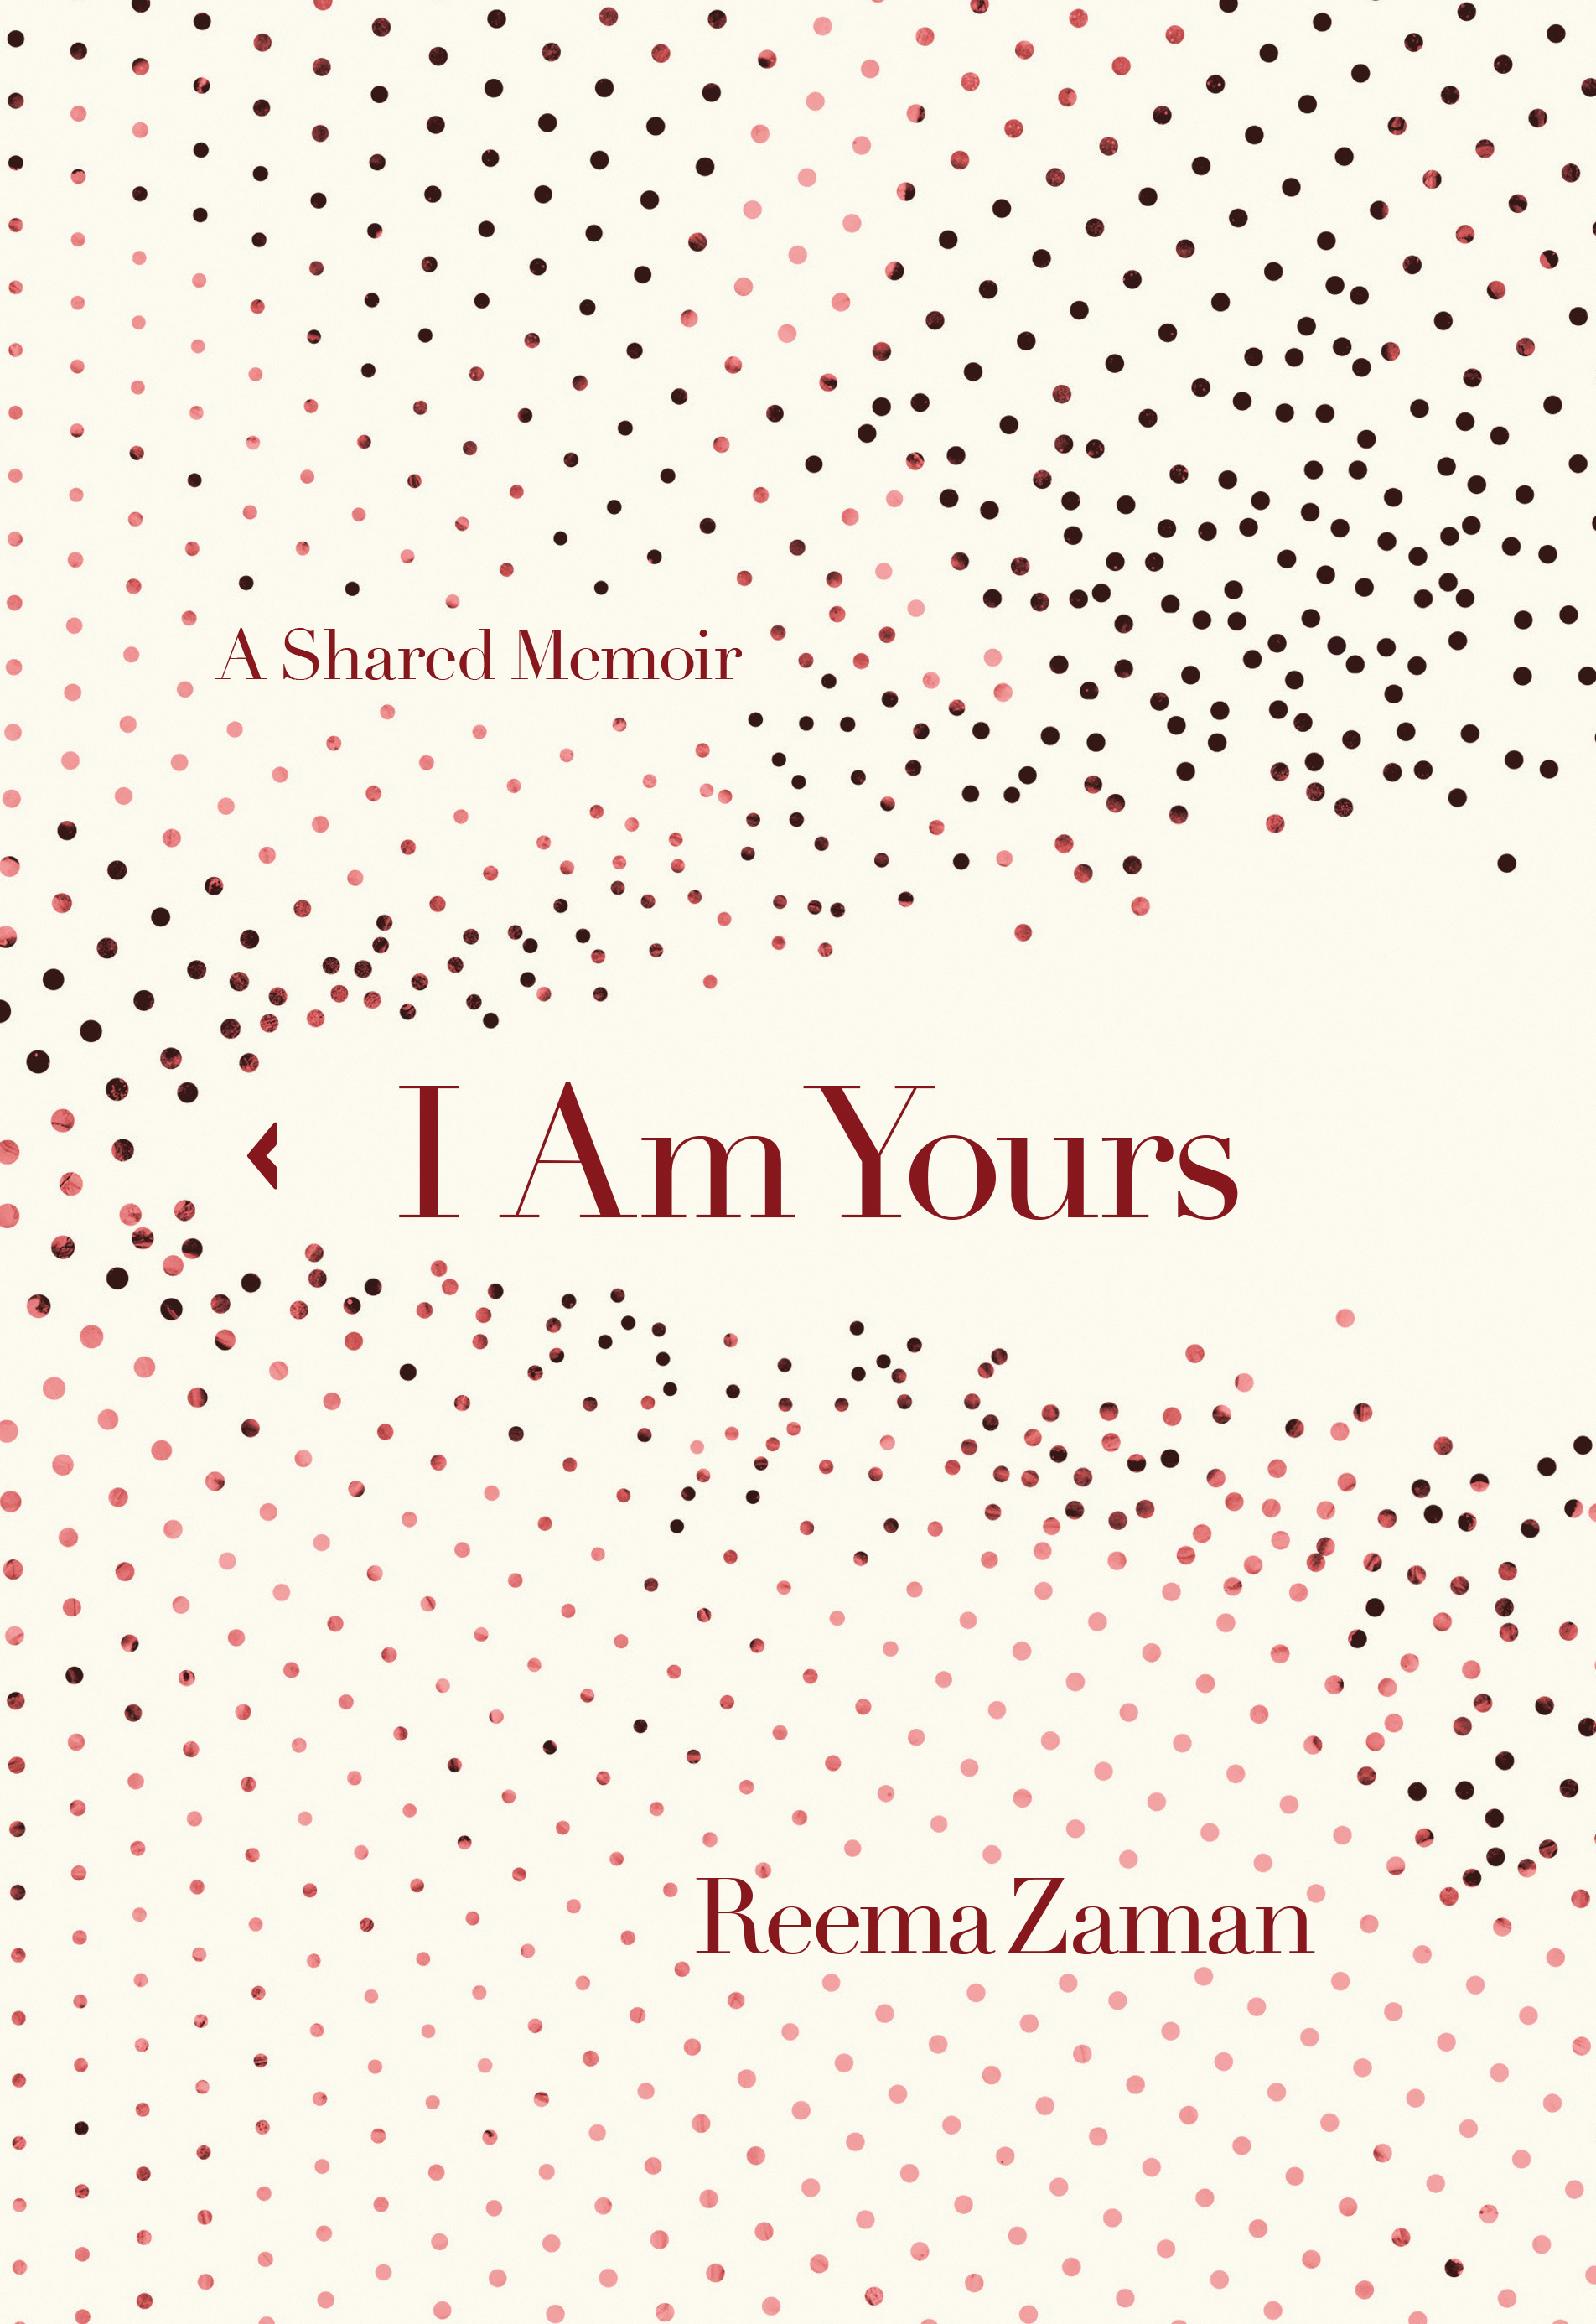 Zaman Reema I AM YOURS 2D cover 2nd prt.jpg